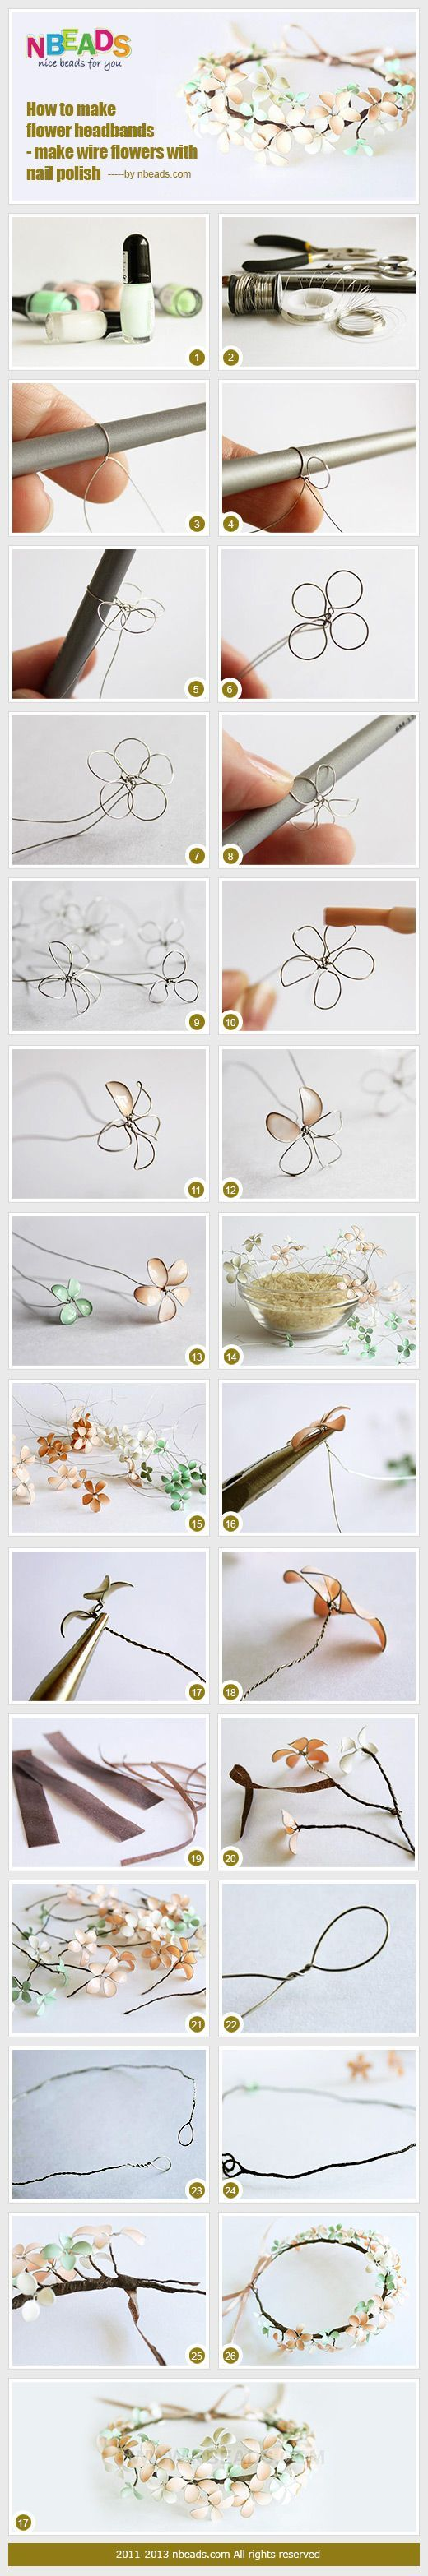 Gonna have to try this..http://pintercrafts.blogspot.ca/2013/04/spring-flowers-or-second-life-of-your.html: